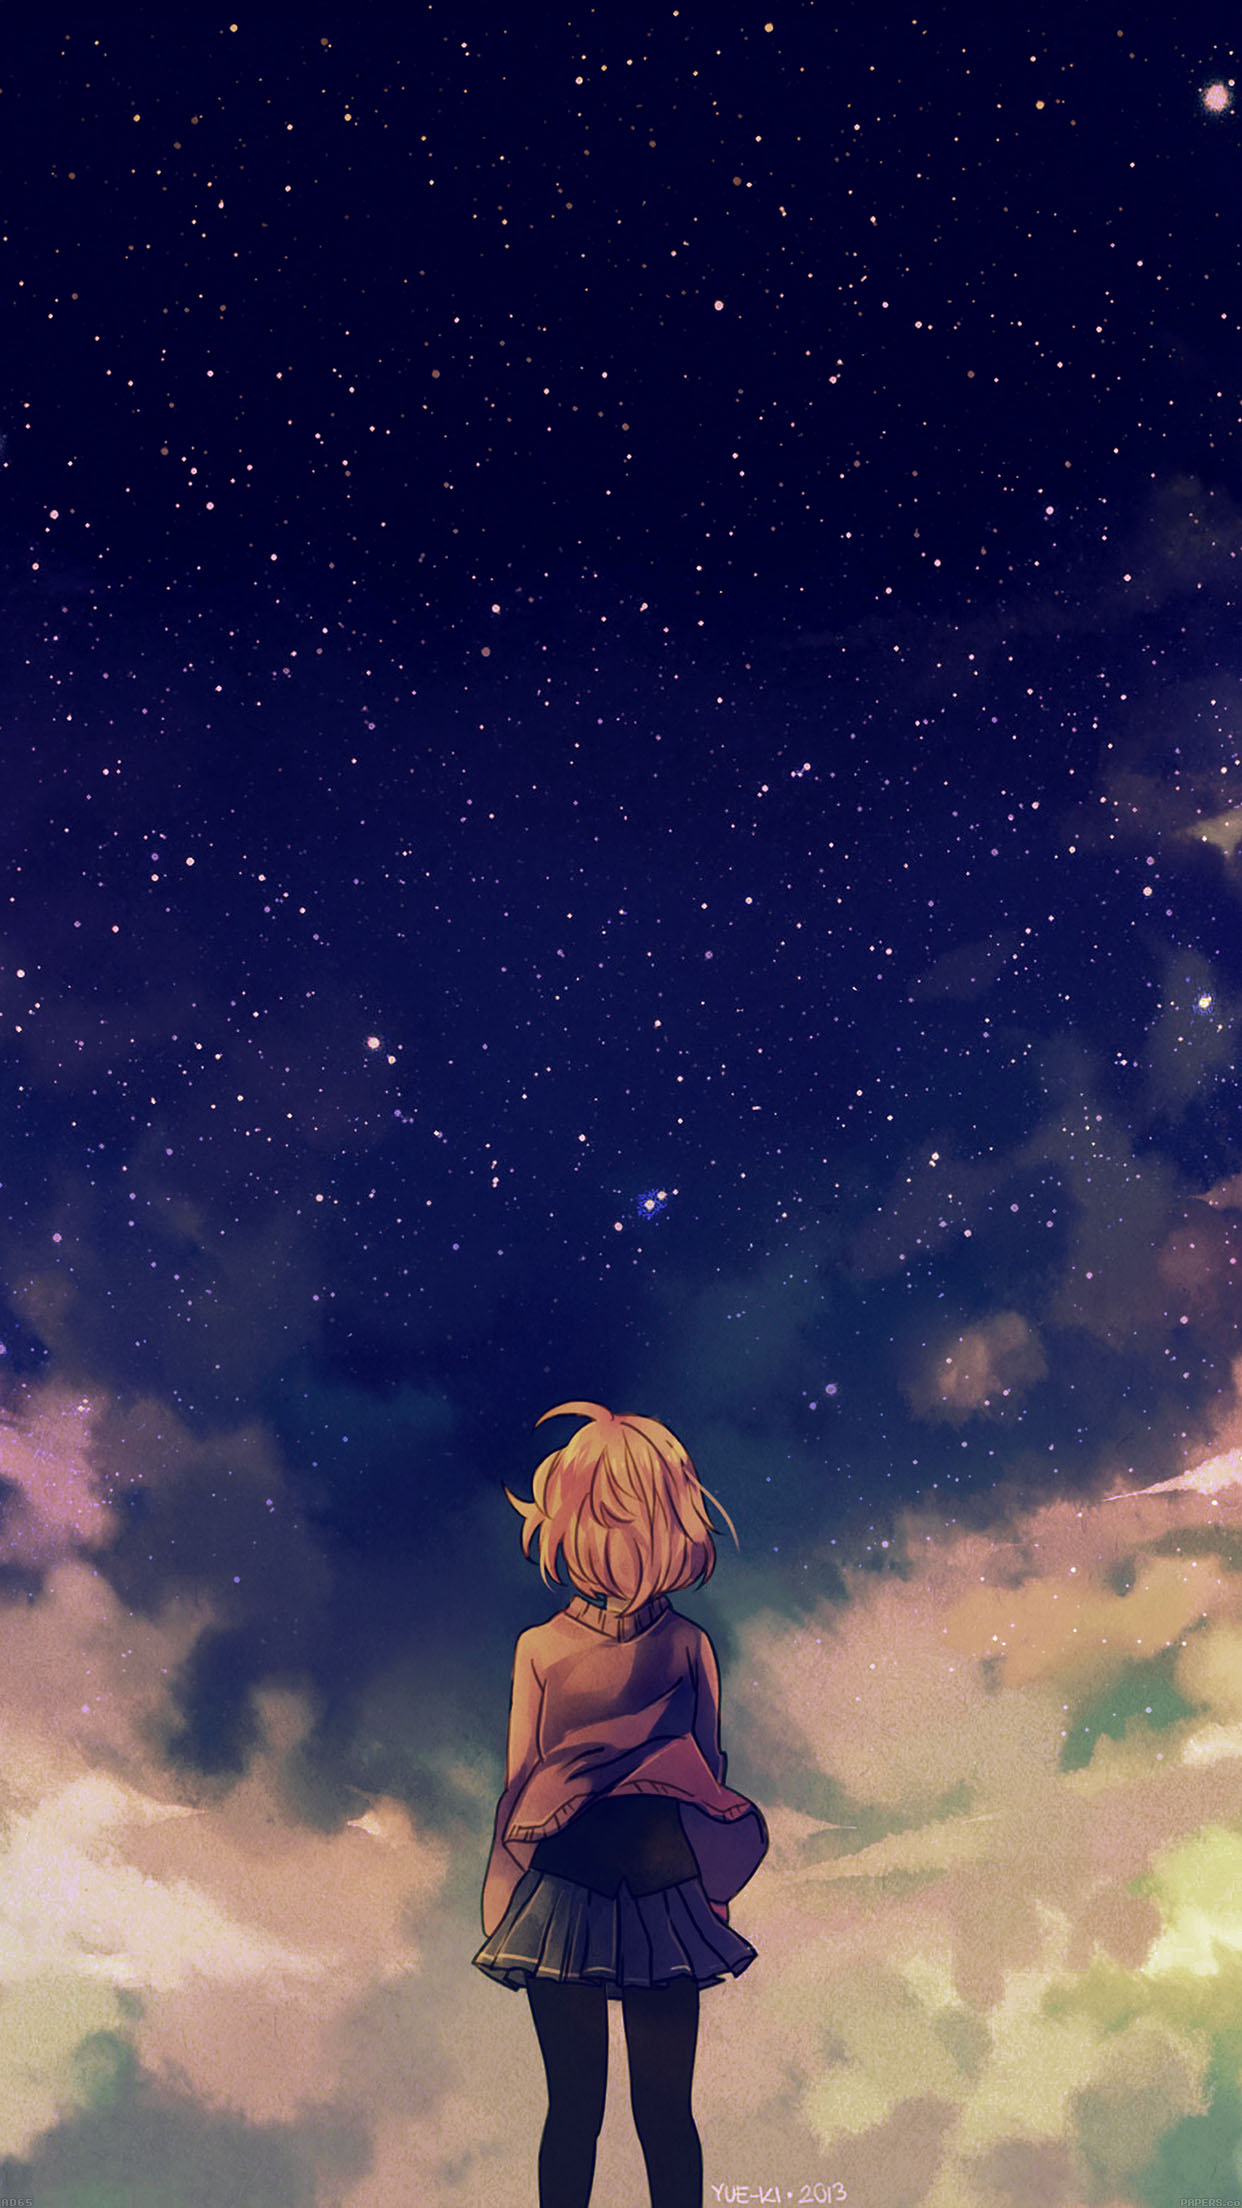 anime wallpaper for iphone papers co iphone wallpaper ad65 starry space illust 8162